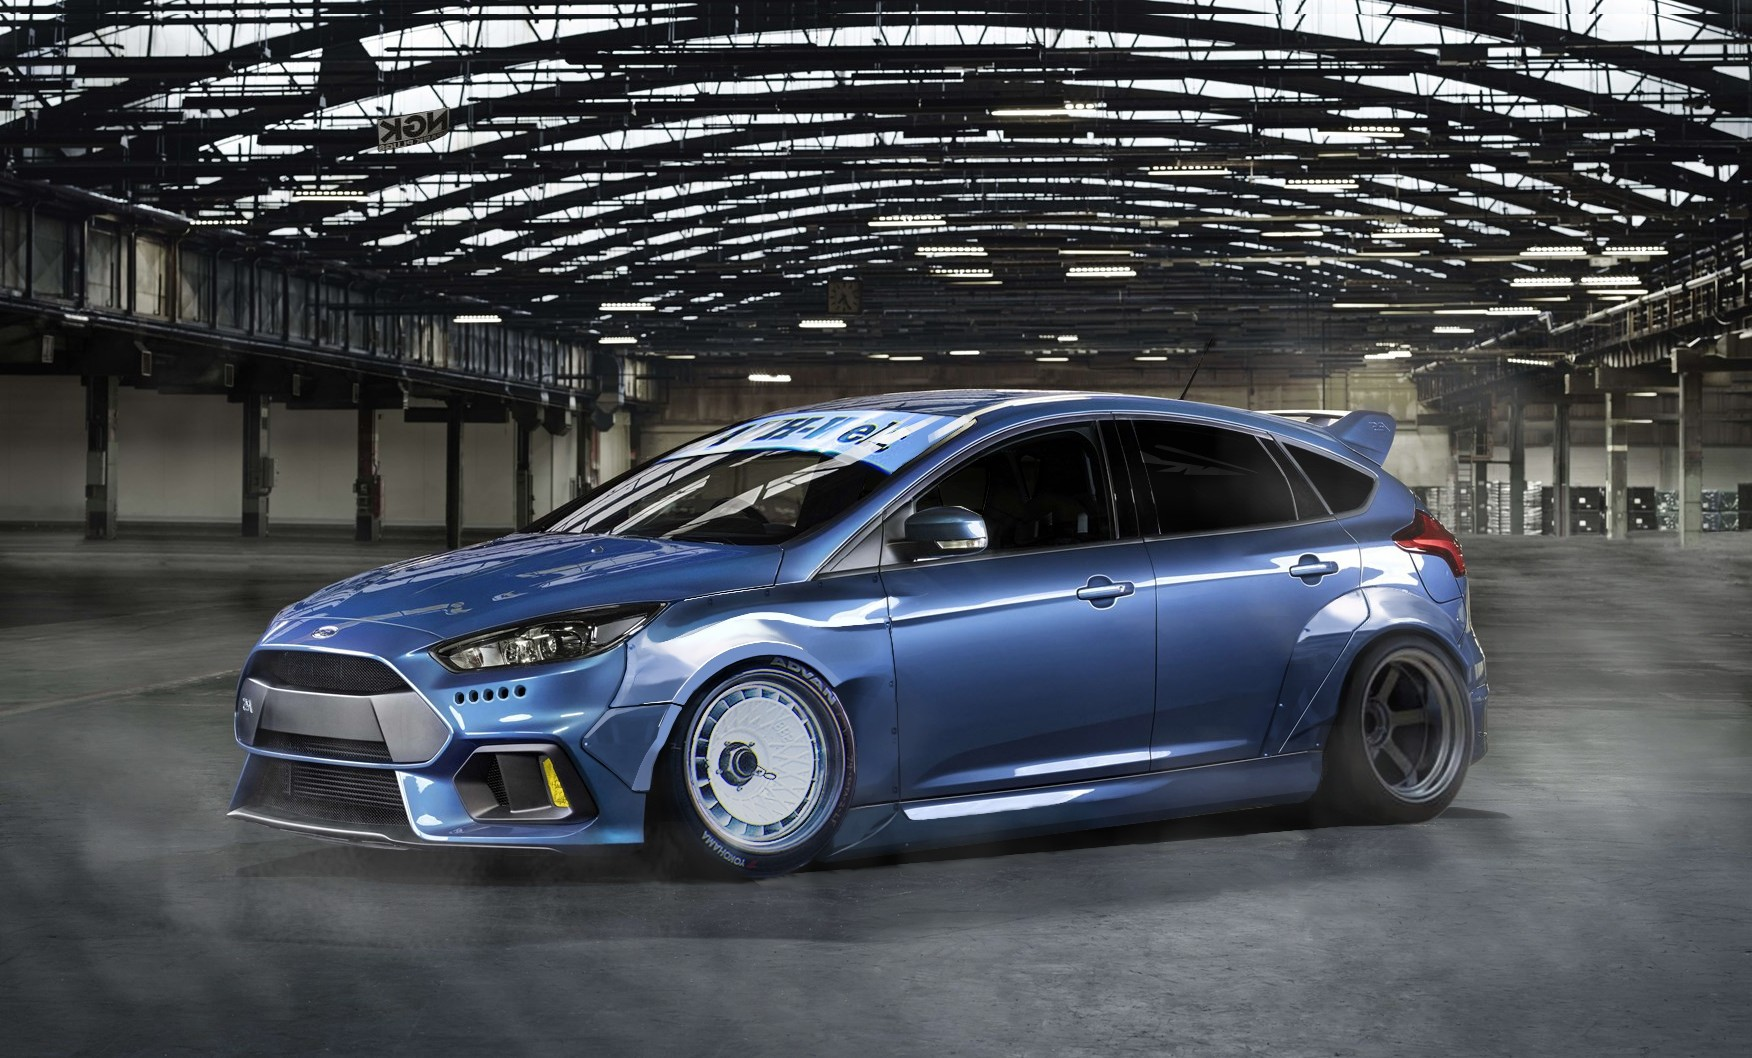 Ford Focus Rs Widebody